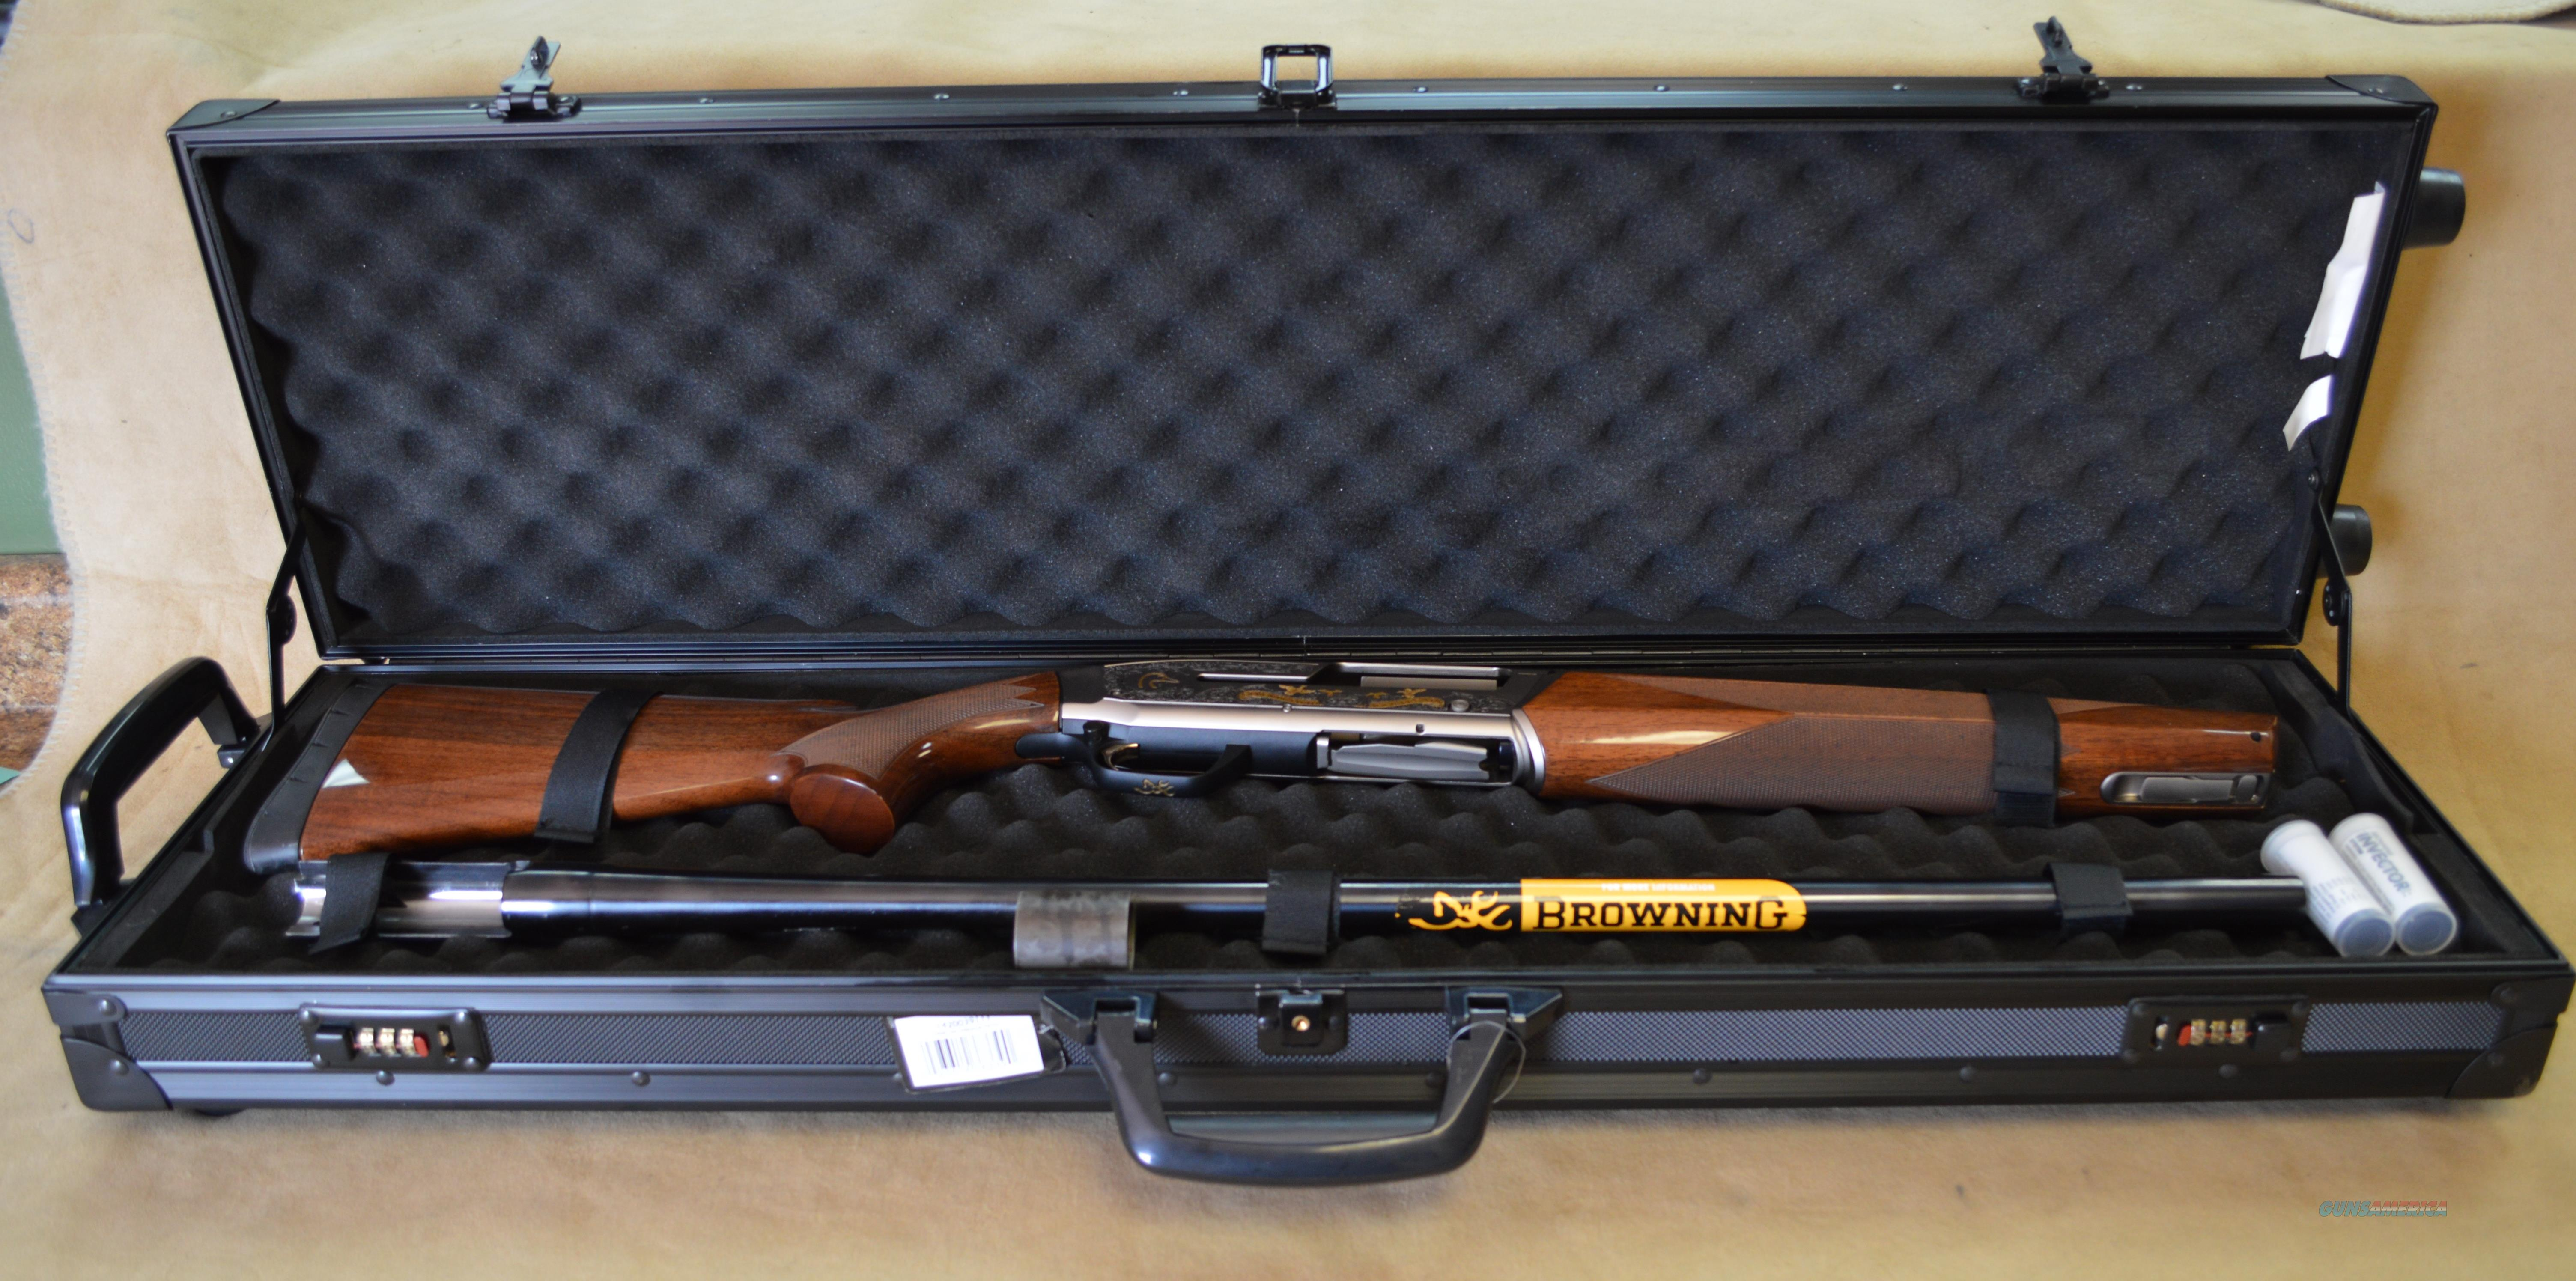 Browning Maxus 75th Anniversary Ducks Unlimited 12 gauge - New in Box - Consignment  Guns > Shotguns > Browning Shotguns > Autoloaders > Hunting